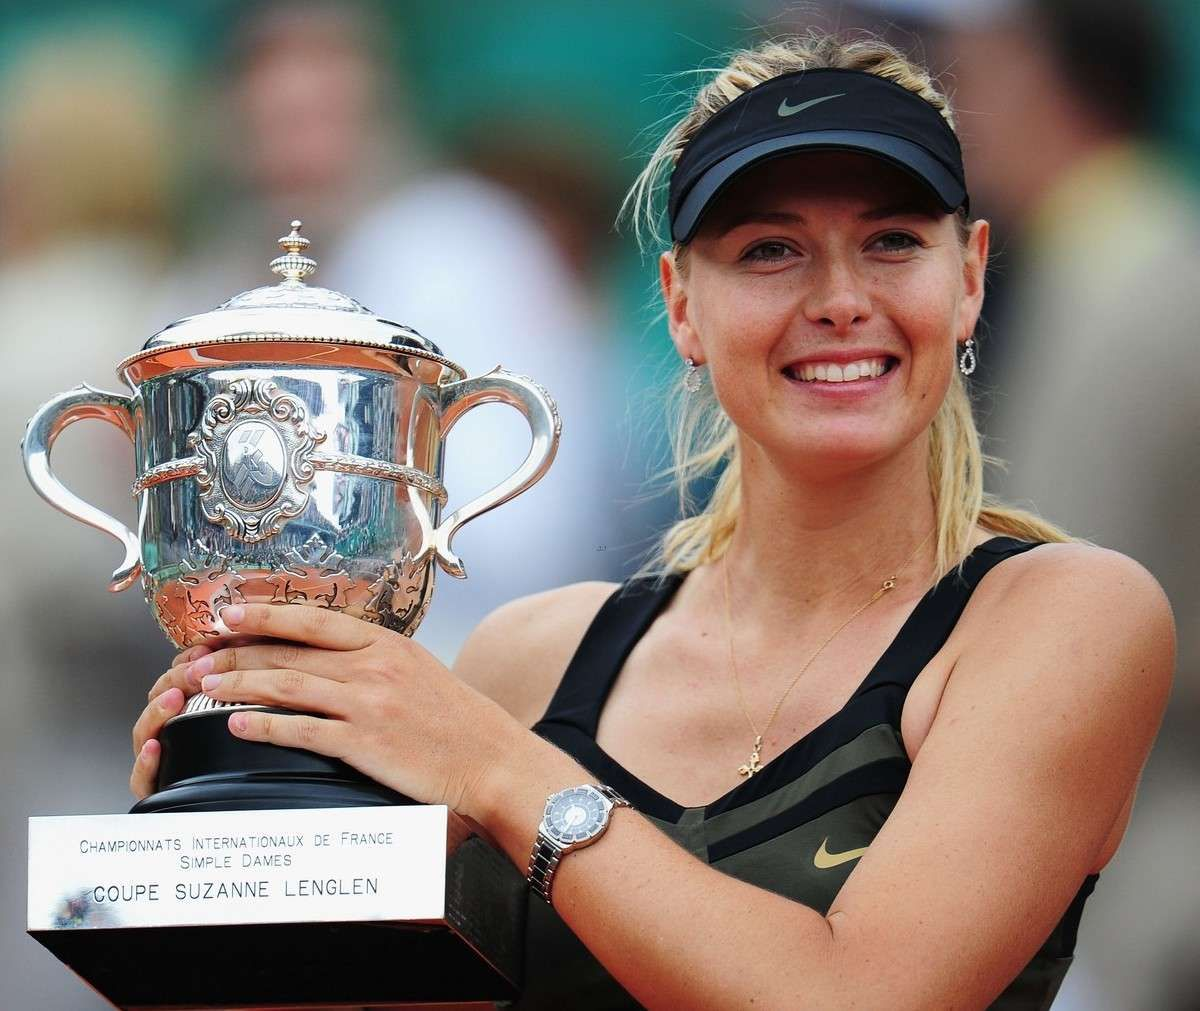 Maria Sharapova receiving an Award